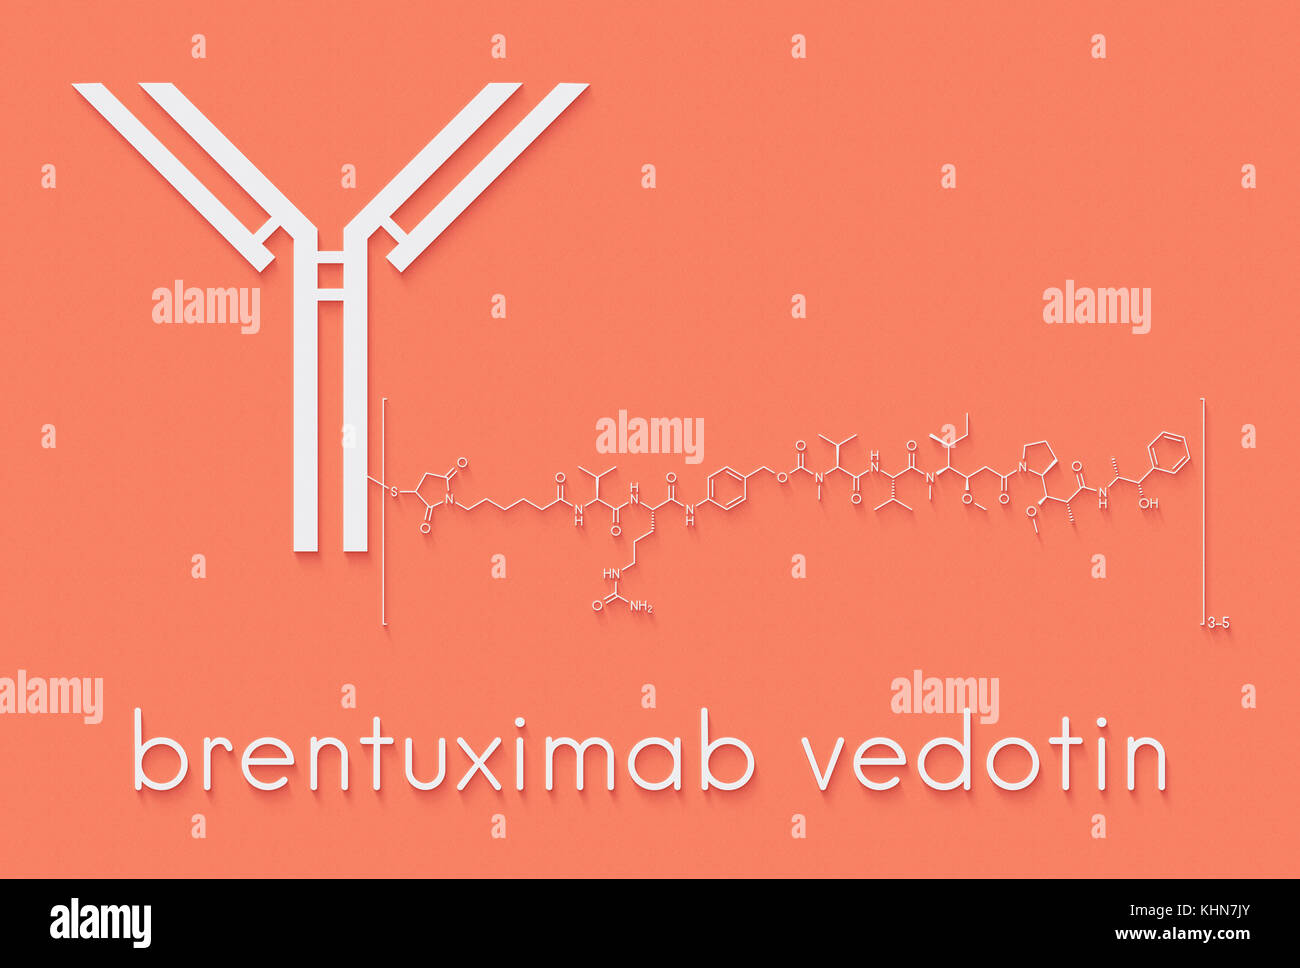 Brentuximab vedotin antibody-drug conjugate molecule. Consists of monoclonal antibody conjugated to 3-5 molecules - Stock Image